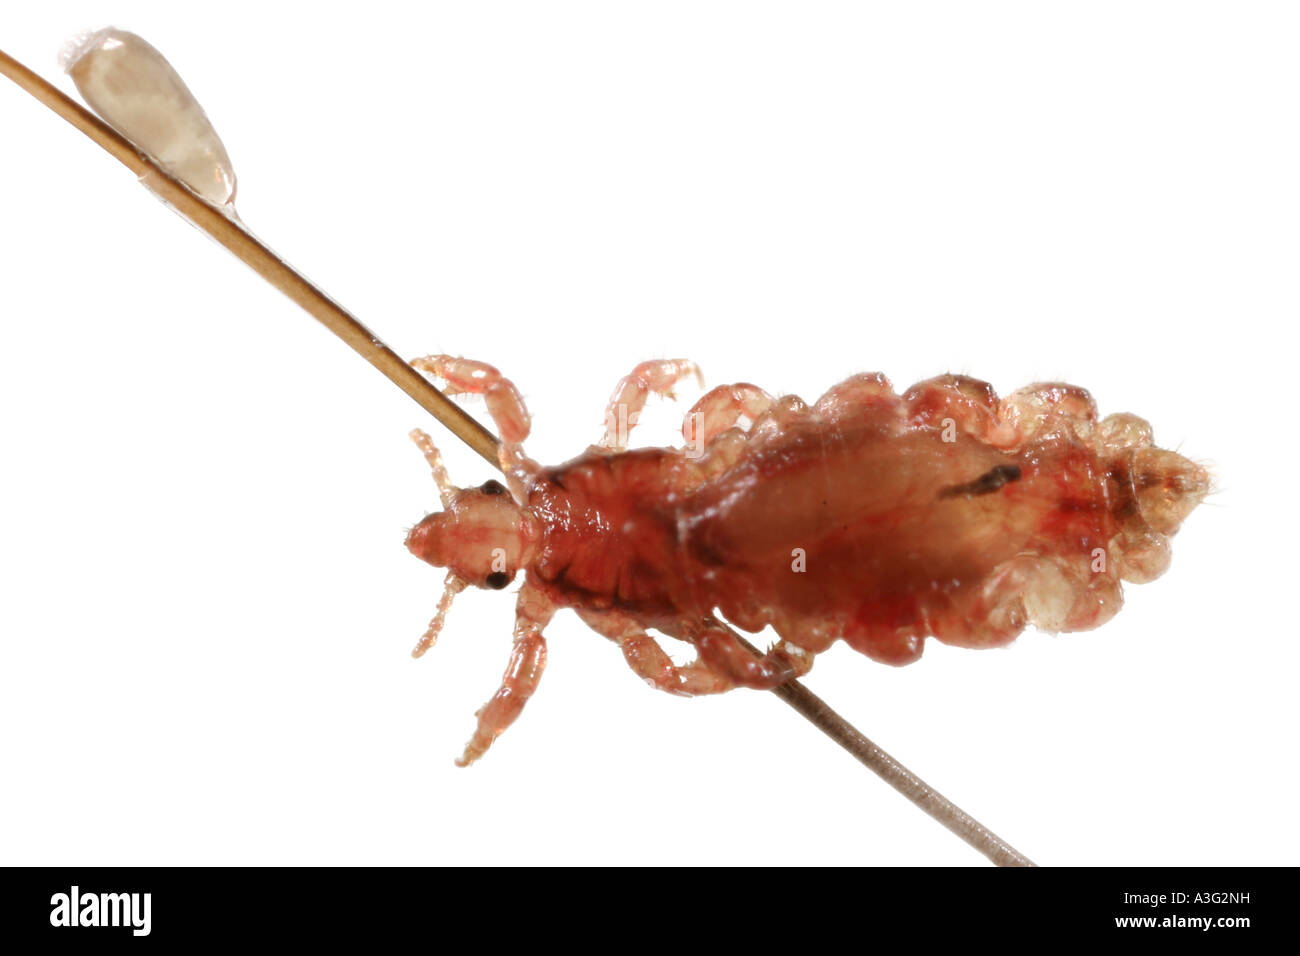 A living hair louse and egg on human hair. Stock Photo